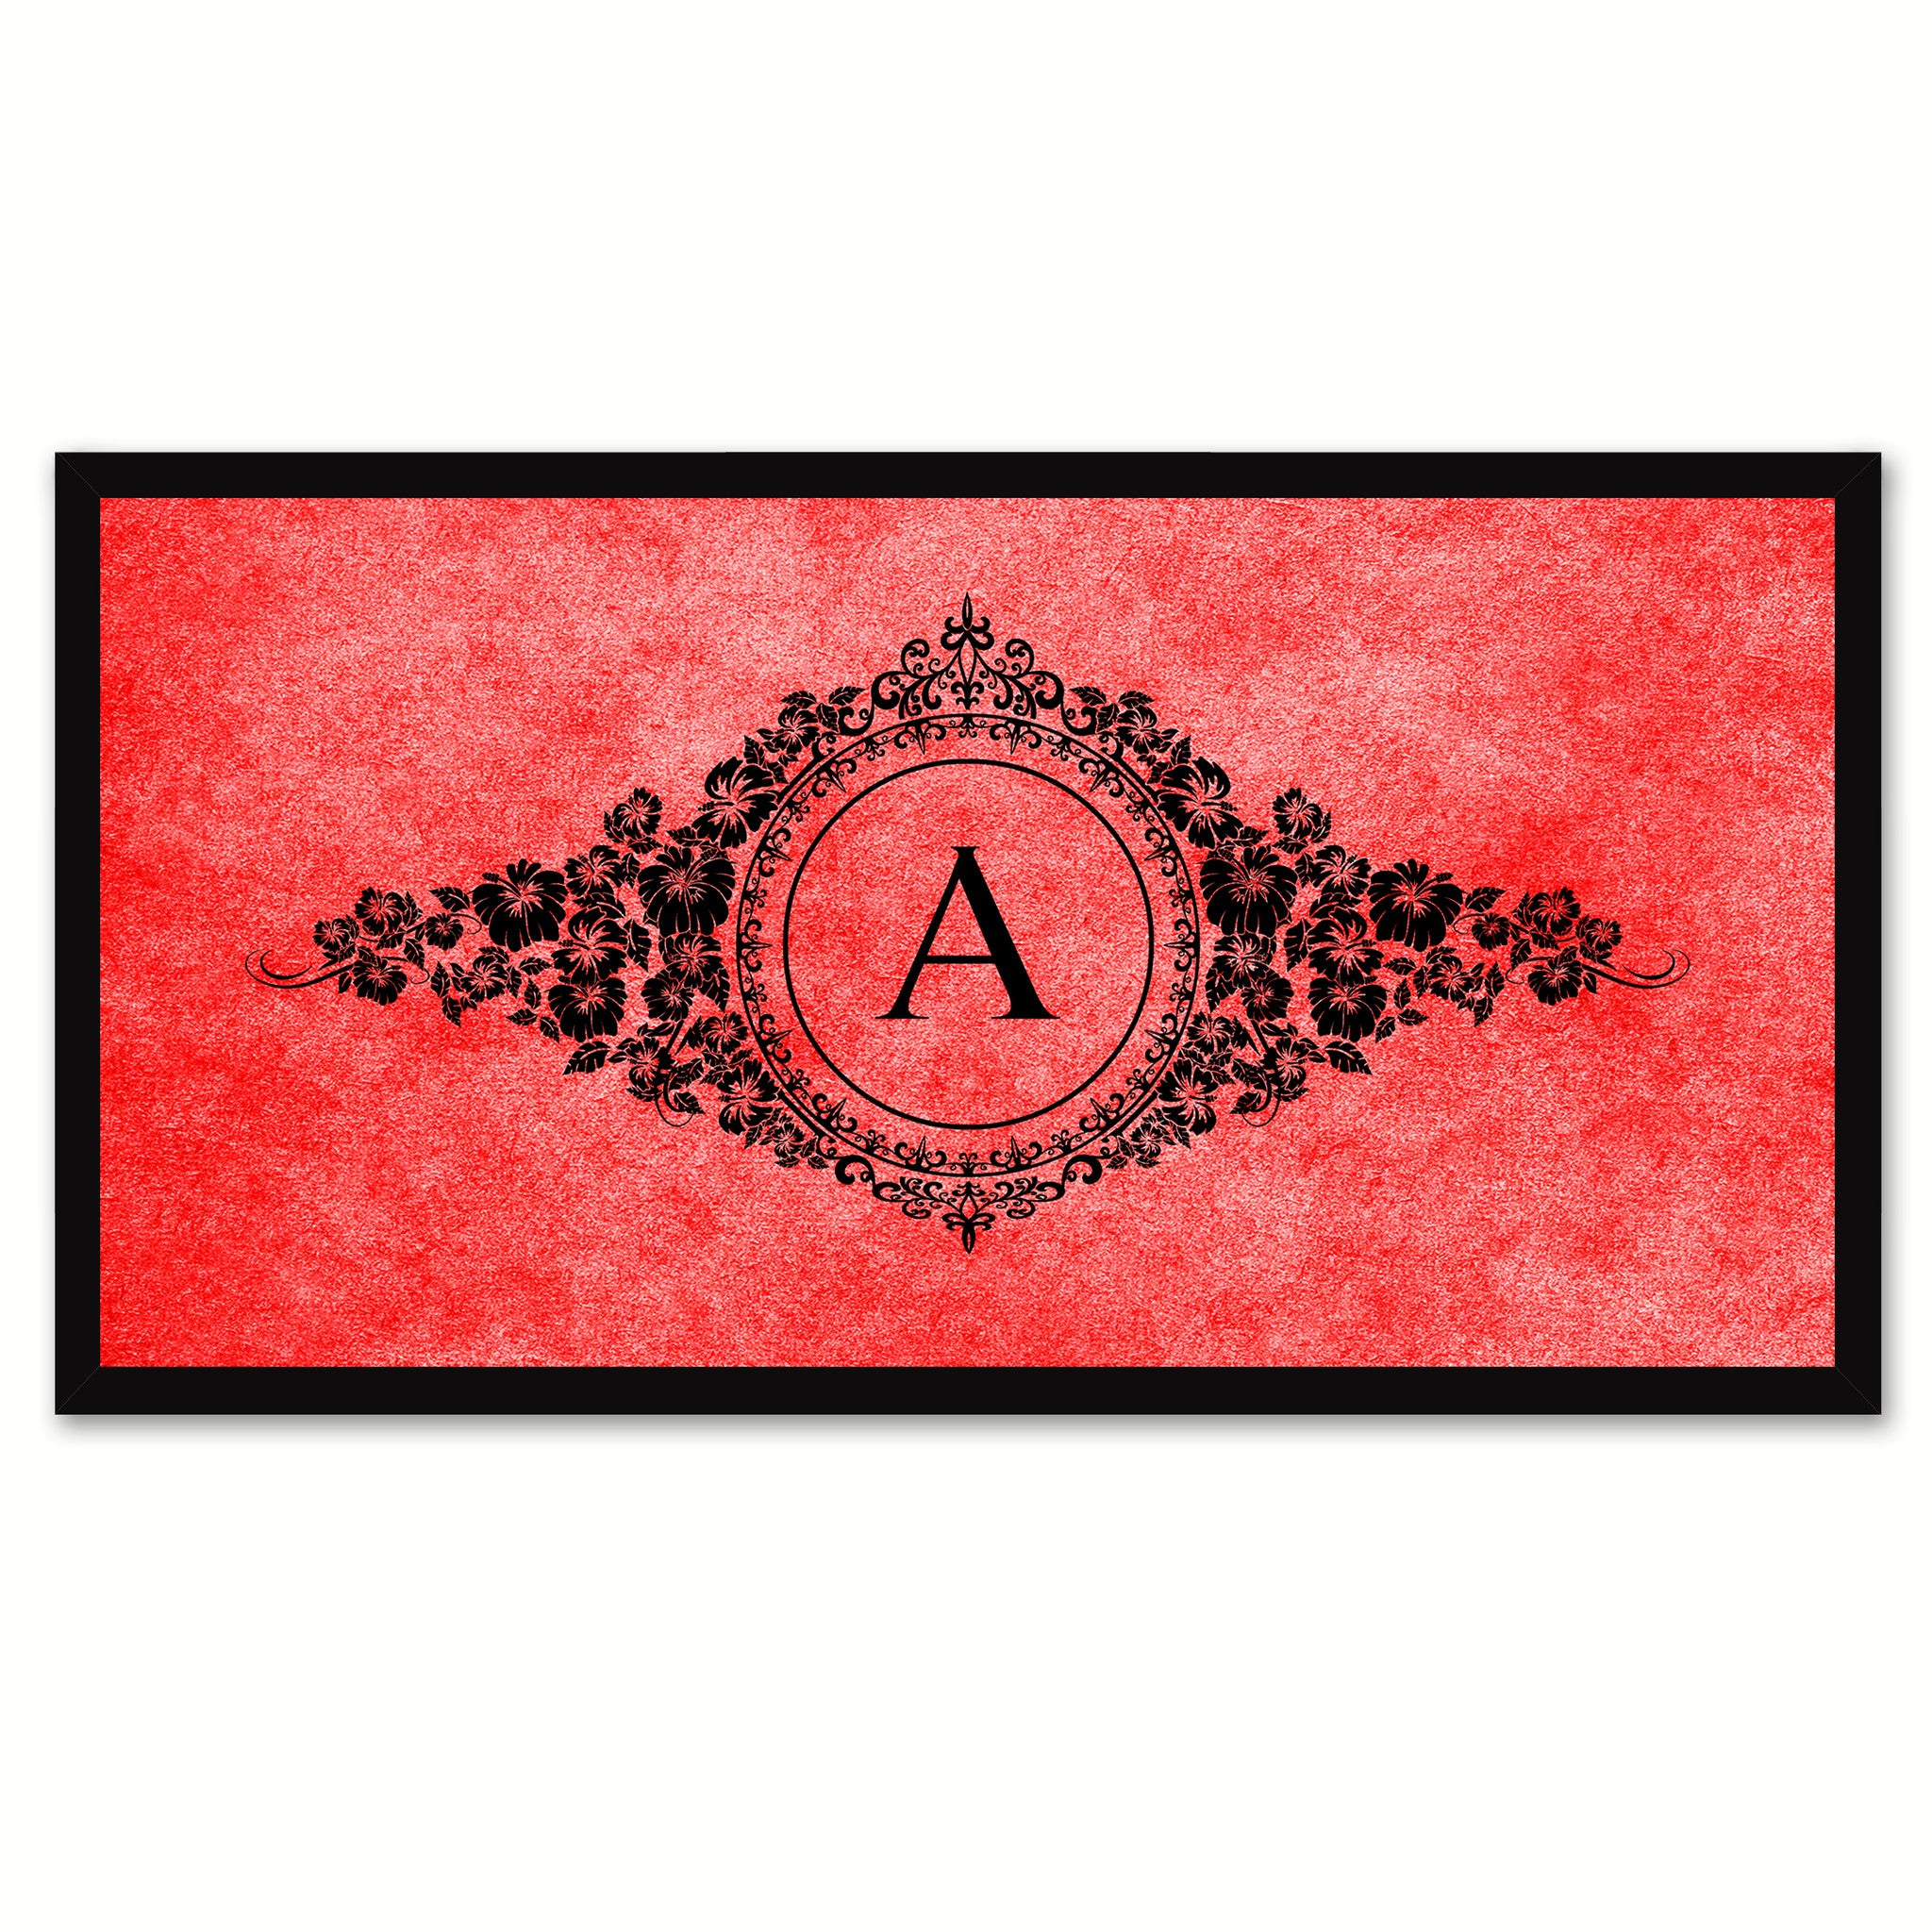 Alphabet Letter A Red Canvas Print, Black Custom Frame